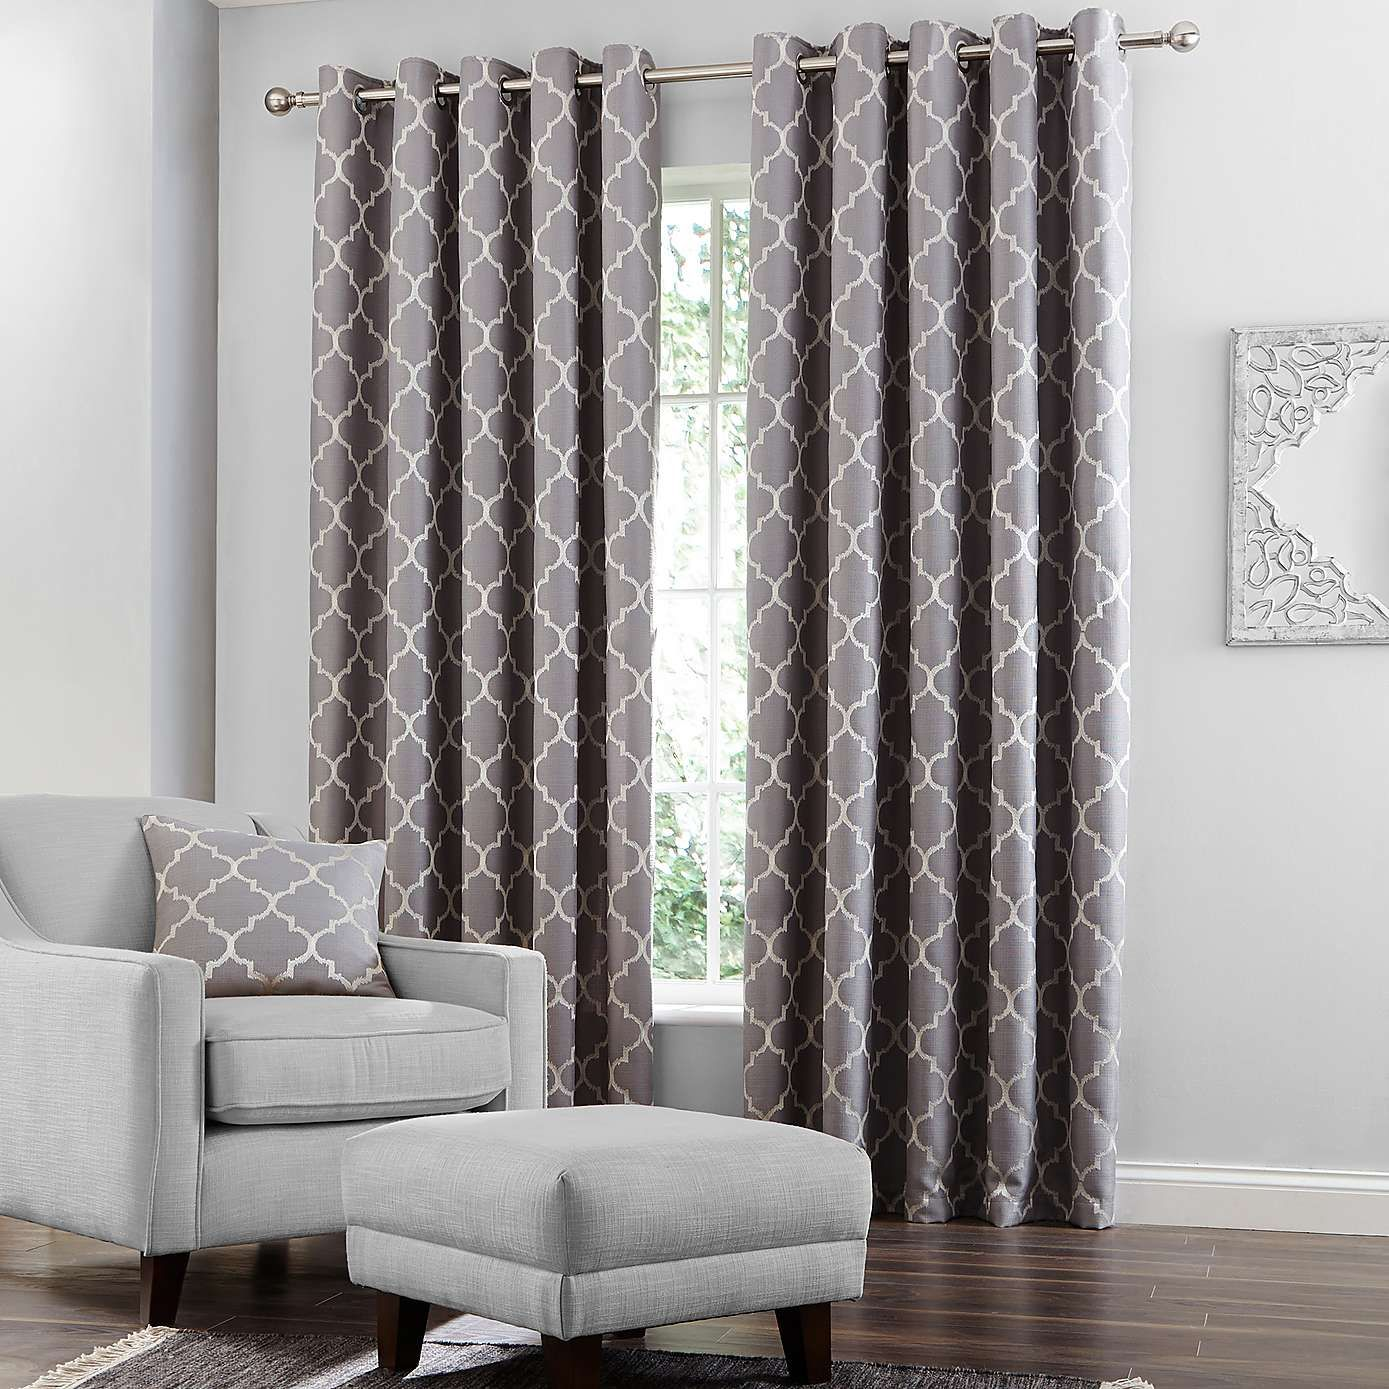 a hilja cm rugs rod curtains can ikea or on pair textiles gb the curtain light products art used grey be en blinds